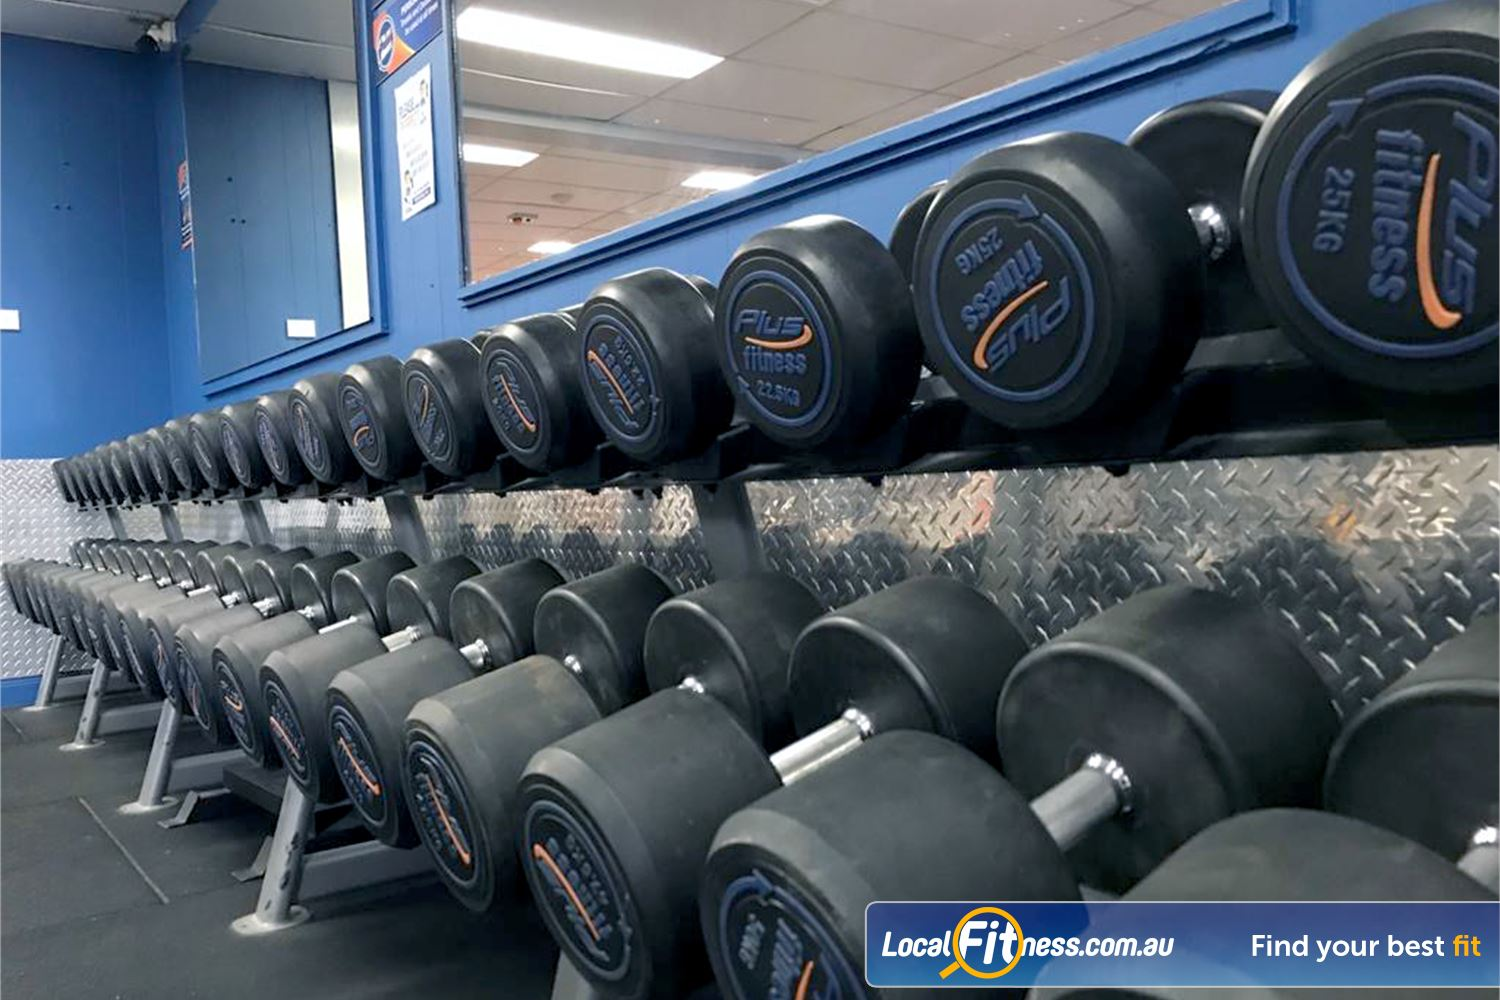 Plus Fitness Health Clubs Northmead Get a complimentary fitness program from our Northmead gym team.